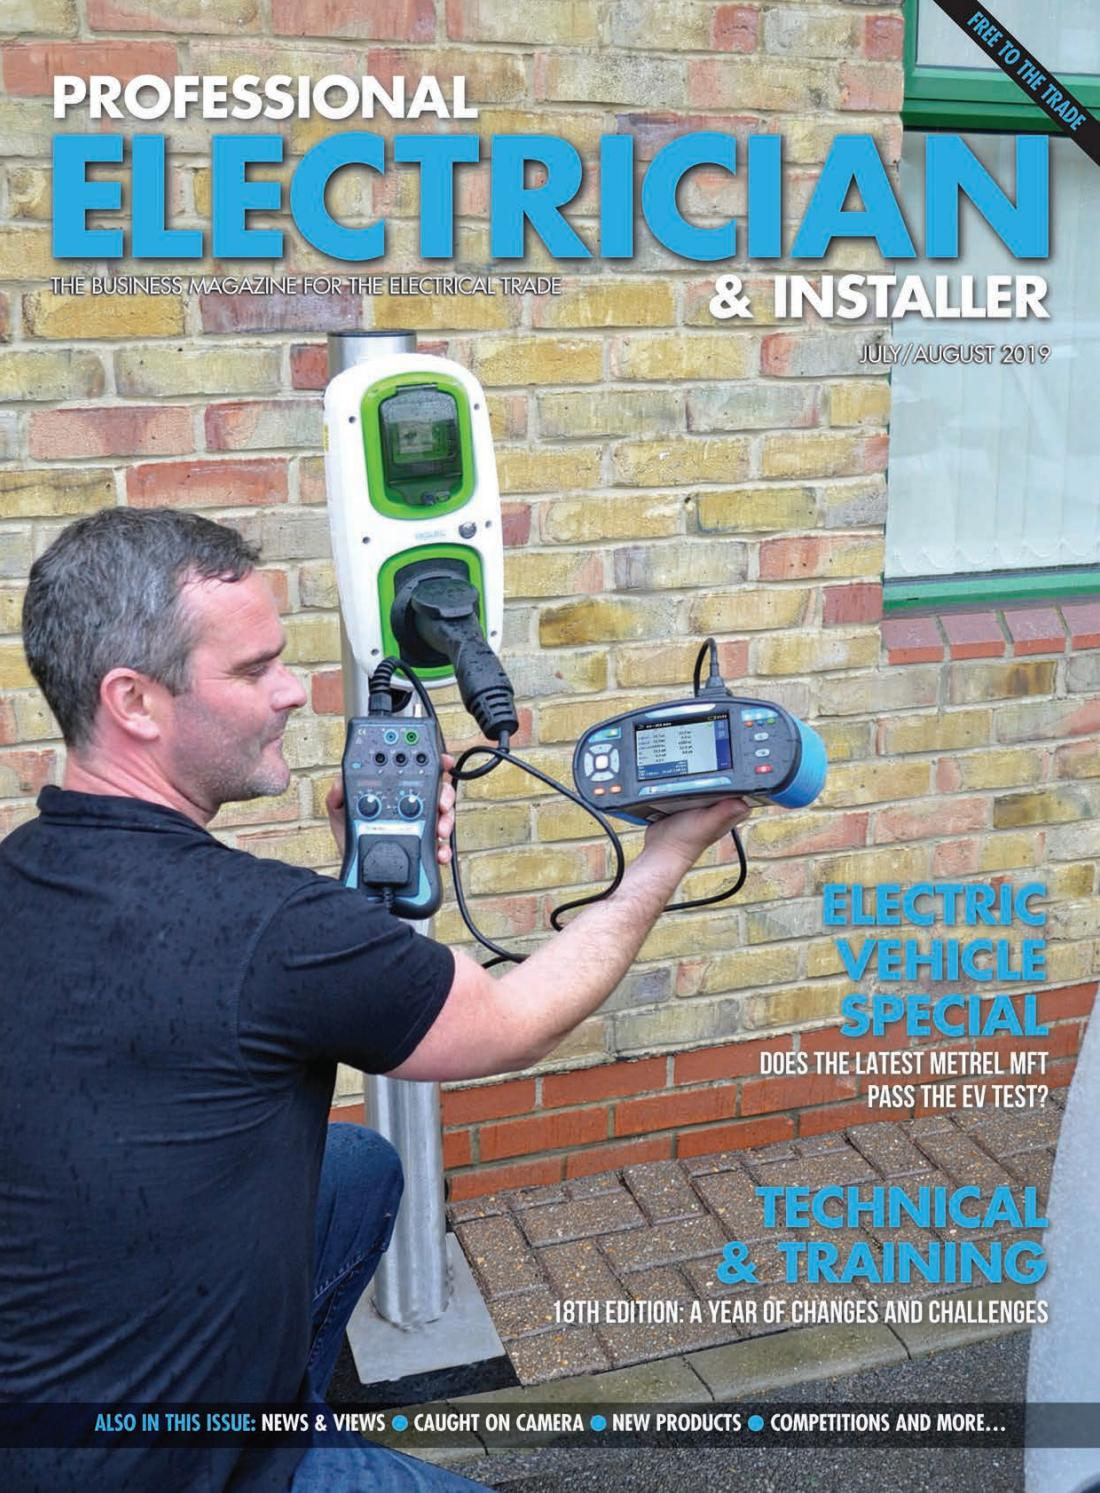 Professional Electrician & Installer July-August 19 by Hamerville